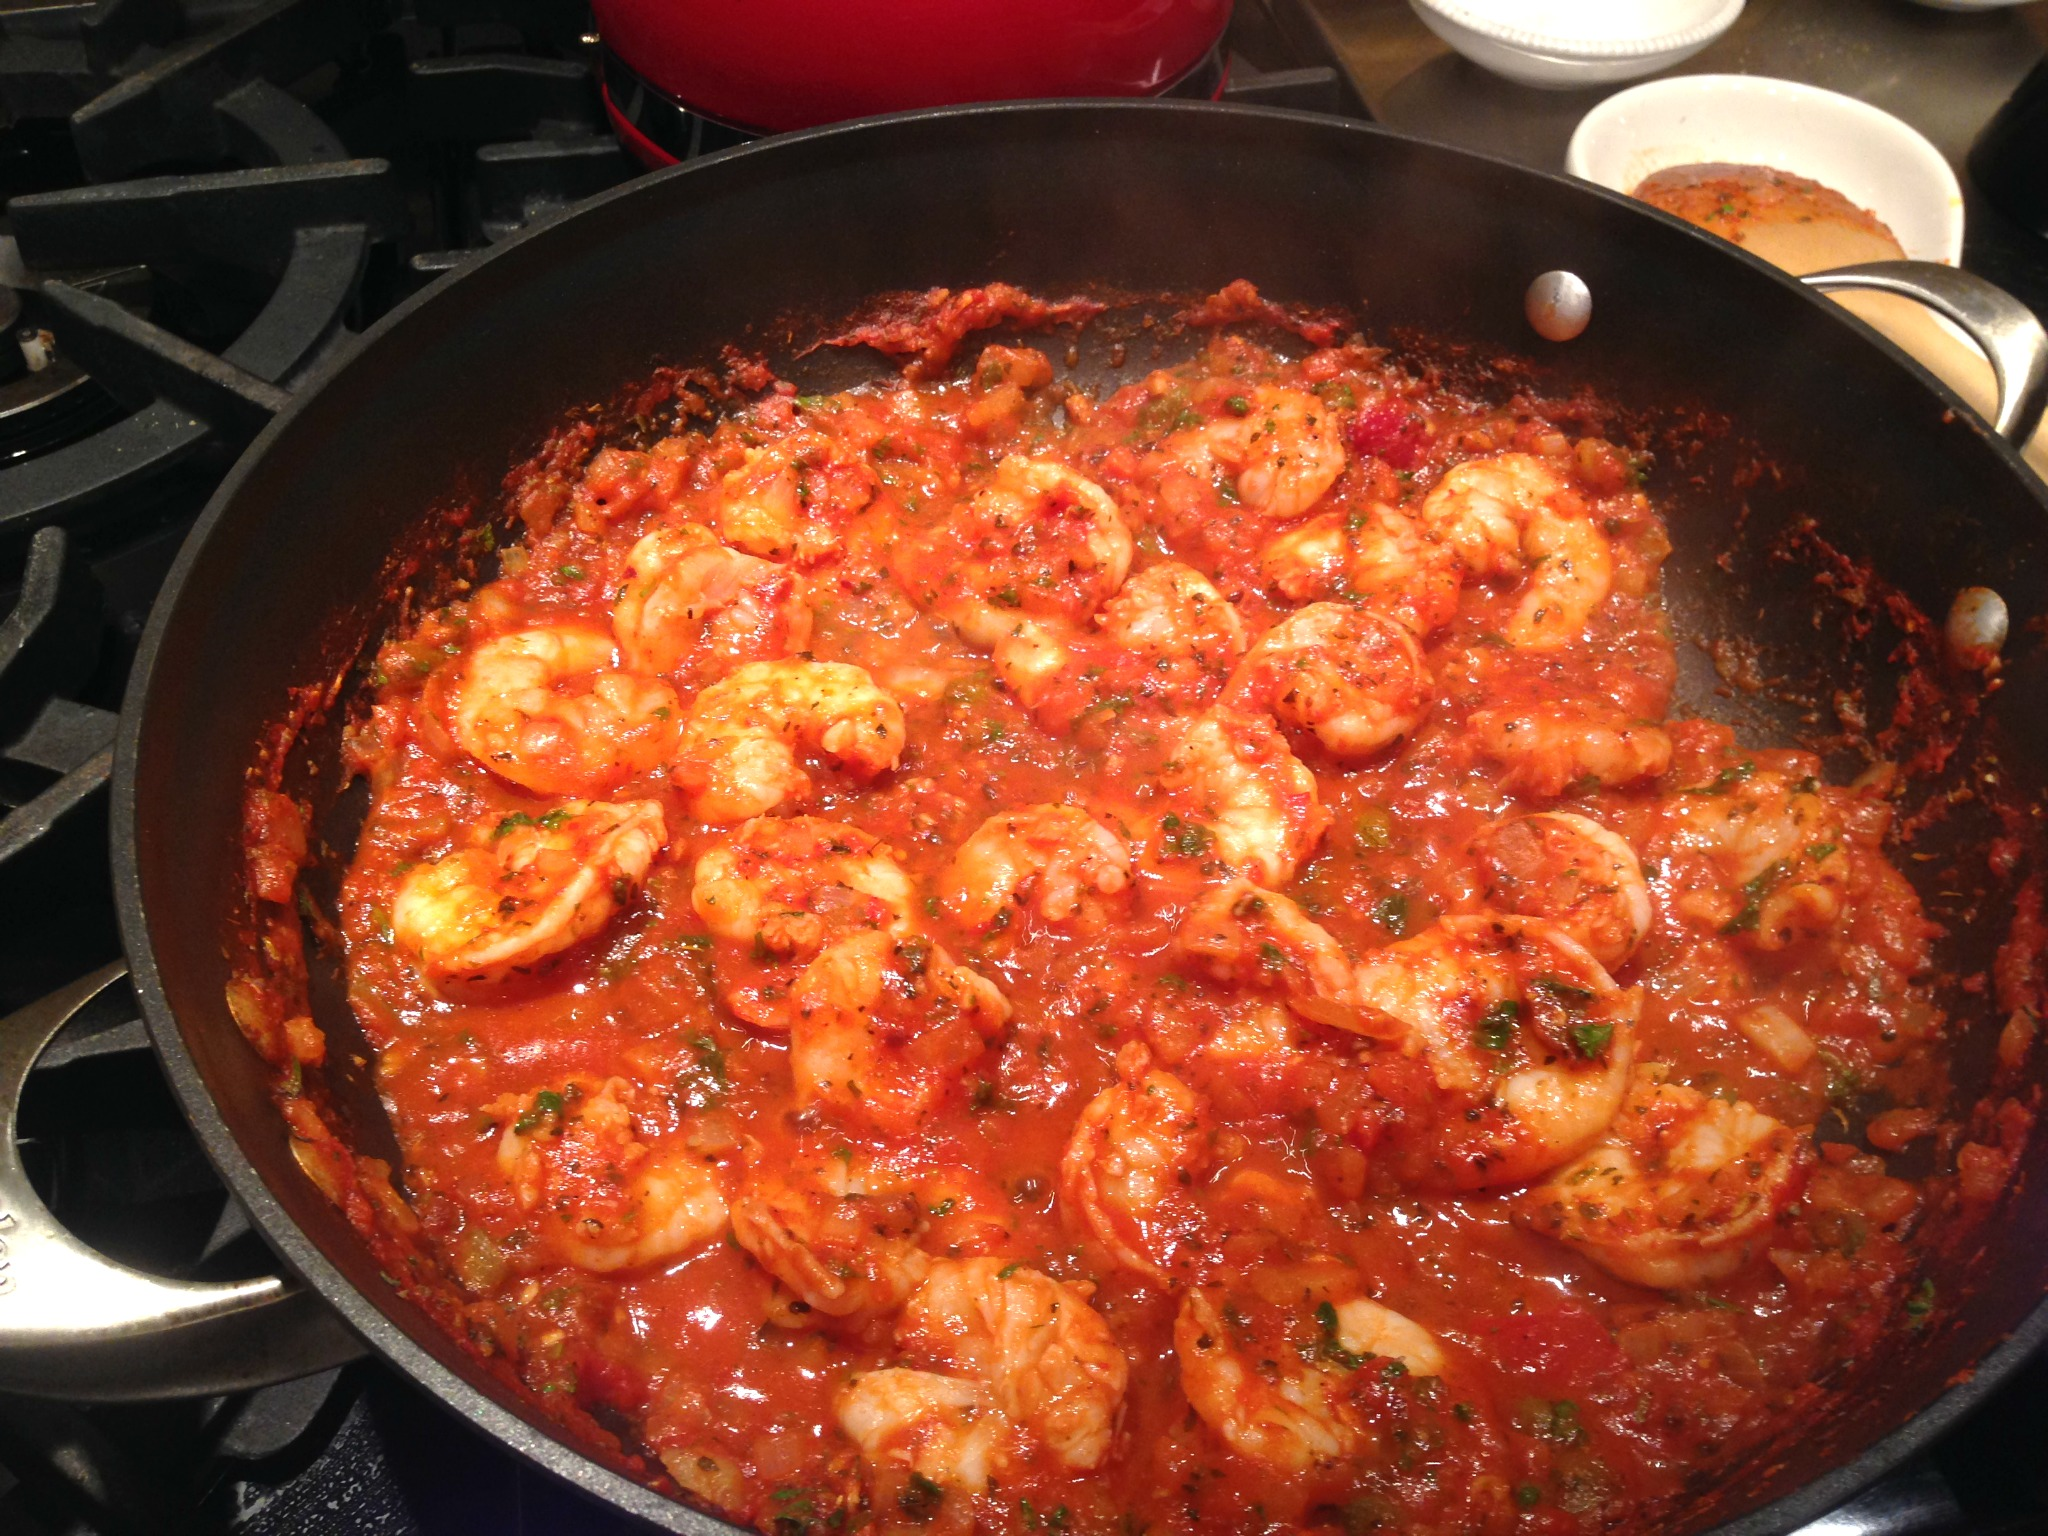 ... Blog Archive » Healthy Dinner #1: Jennifer Garner's Shrimp and Orzo